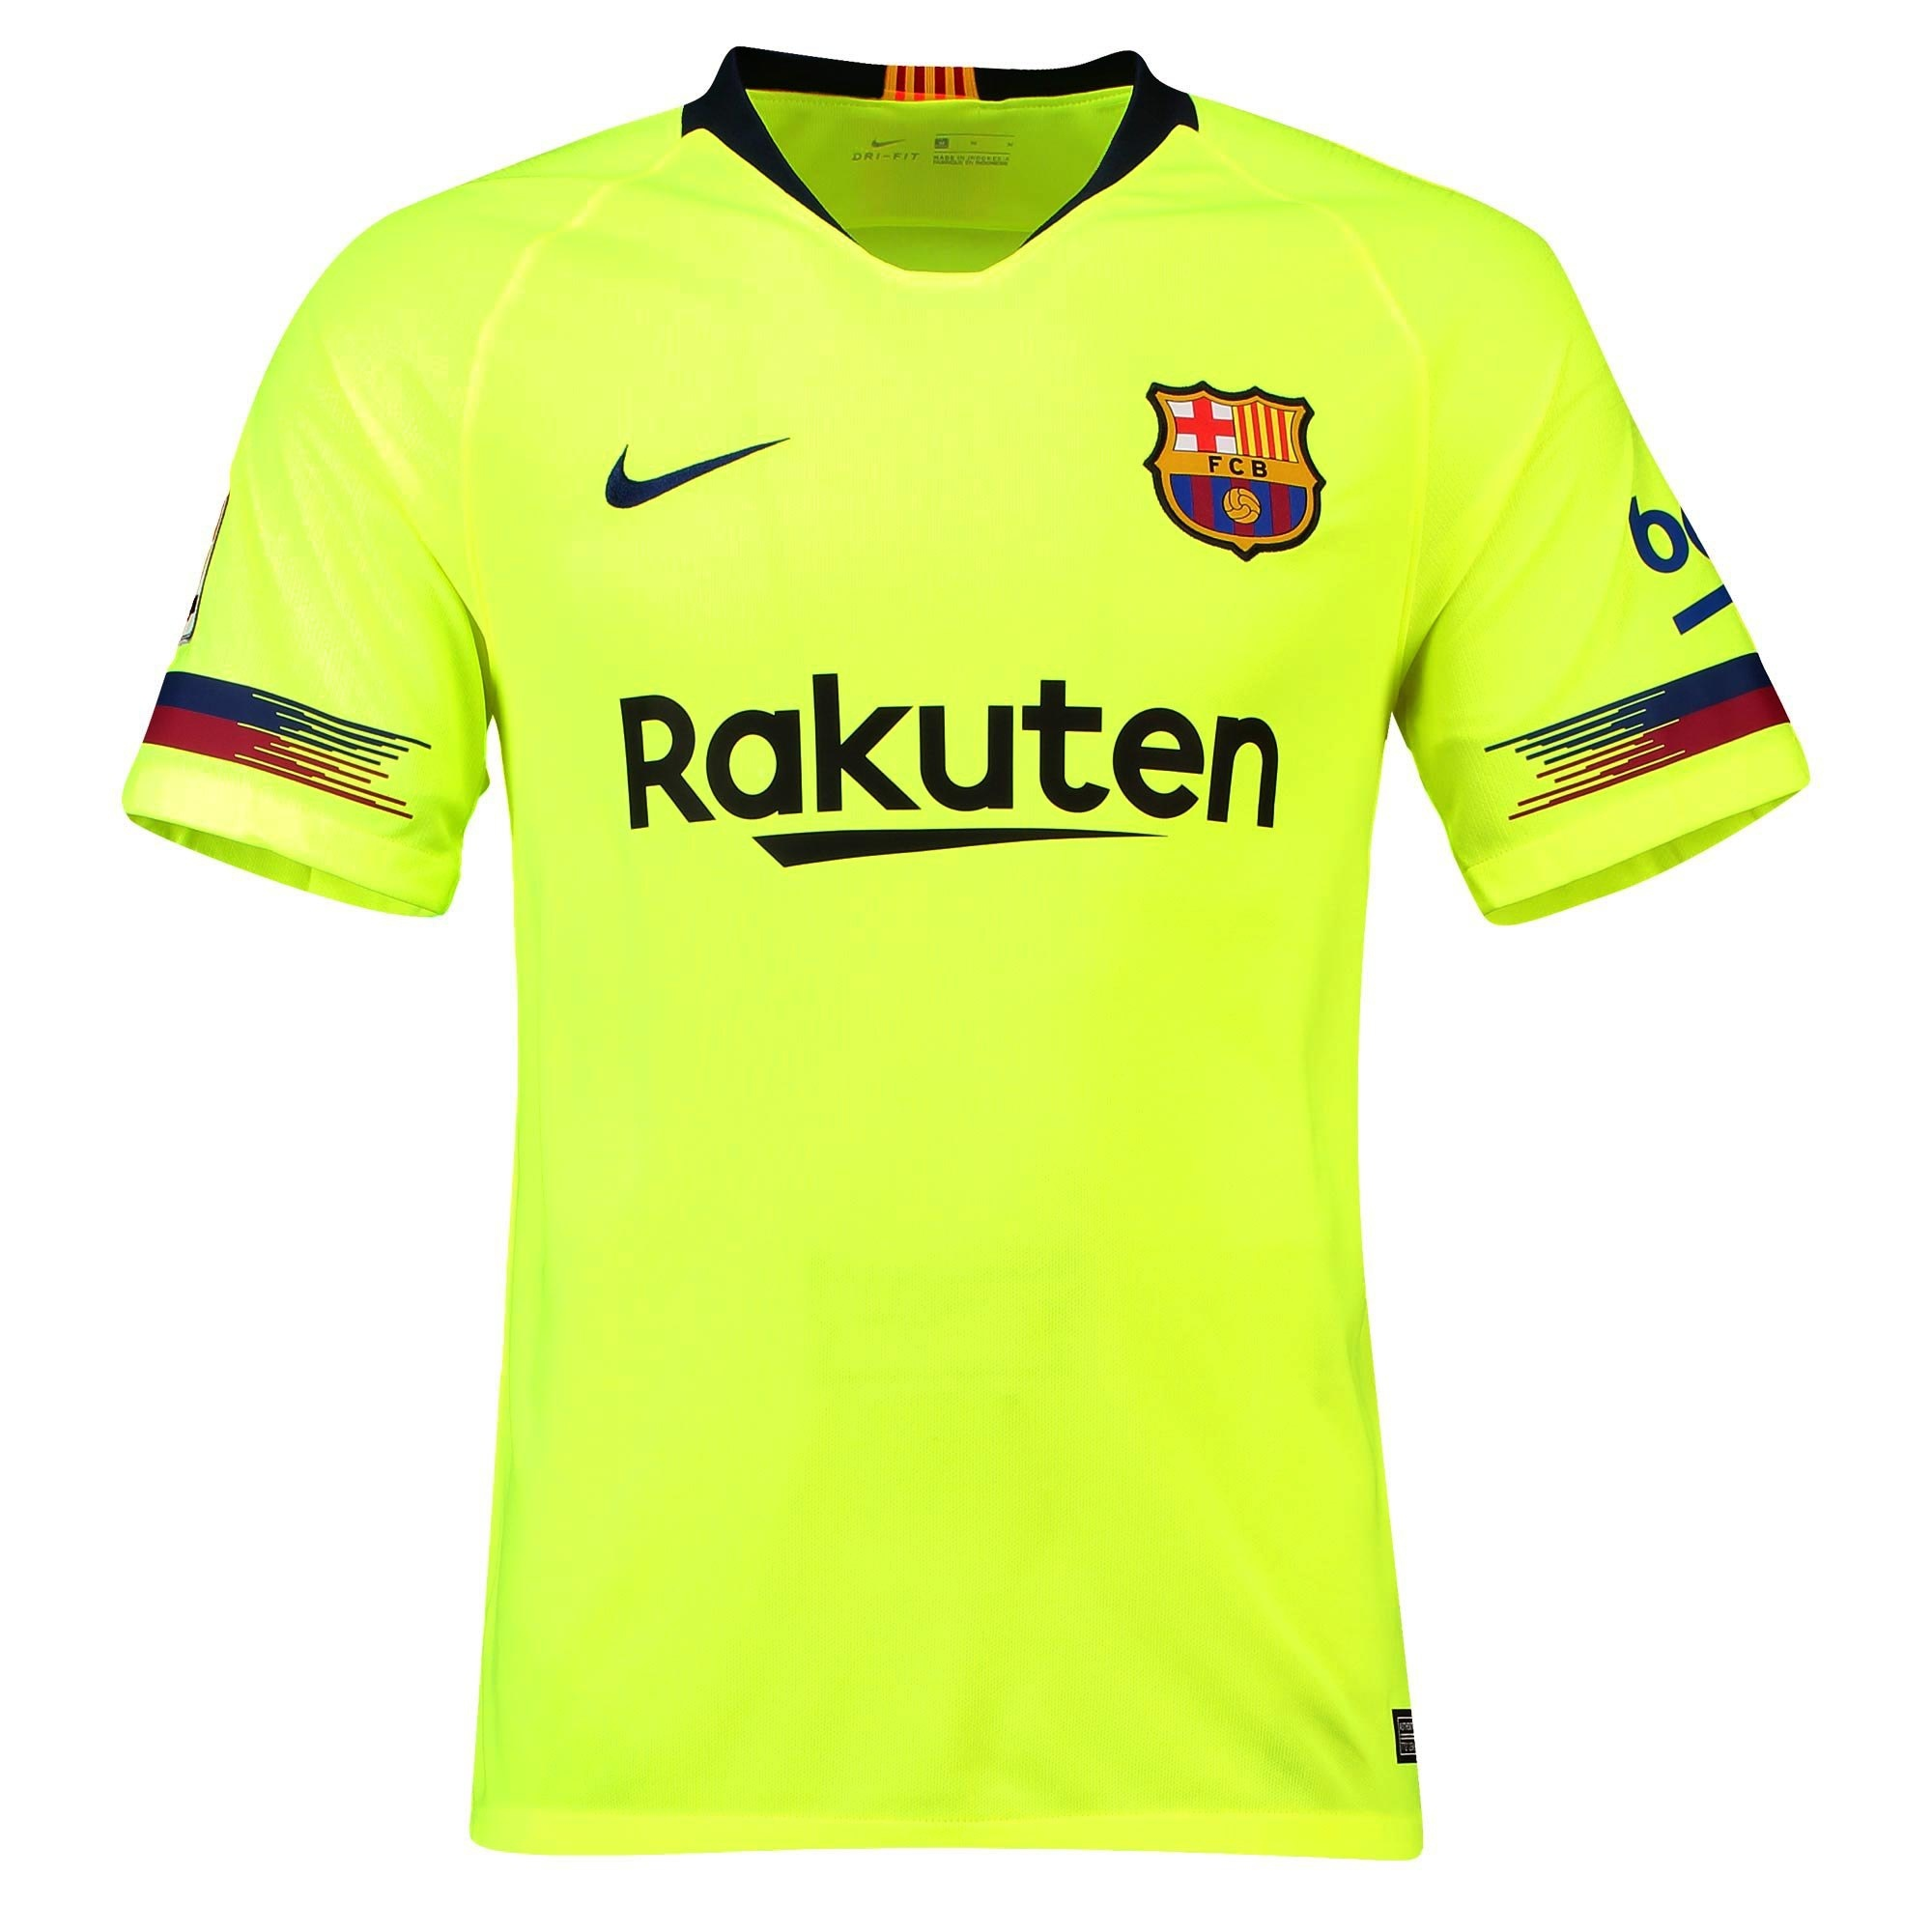 850a7a49b1a Fantreasures is one of the reputed website of India. Fantreasures is  selling sports products since 2002. Fantreasures only sells authentic sports  products ...